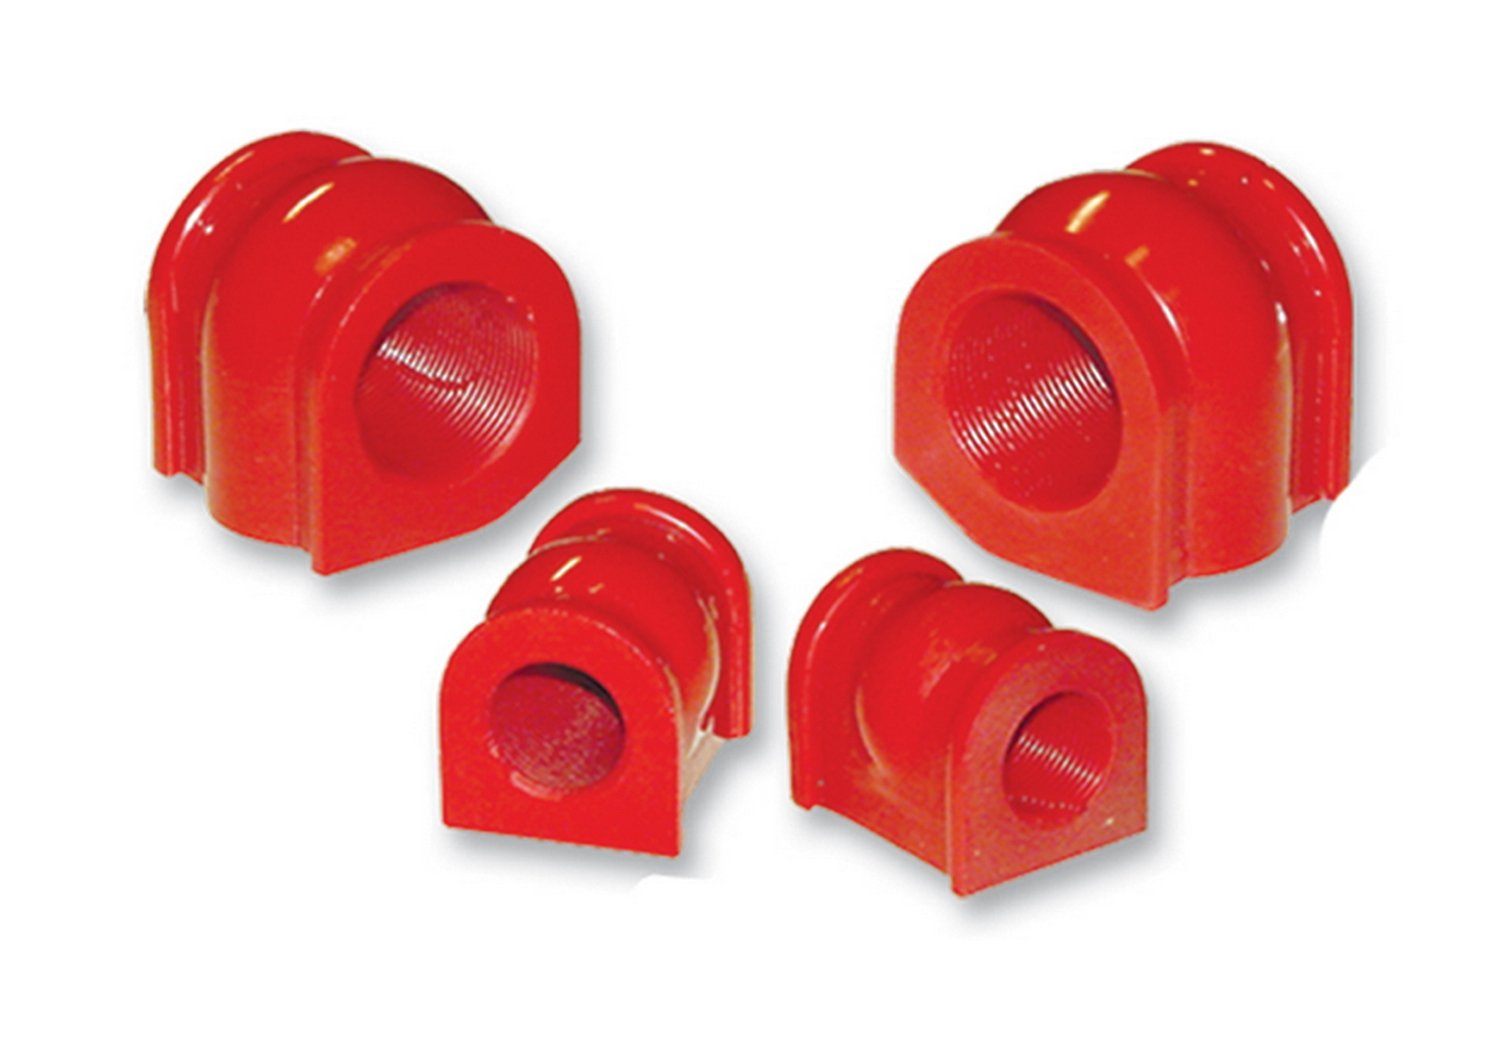 Prothane 8-1138 Red 25.4 mm Front Sway Bar Bushing Kit